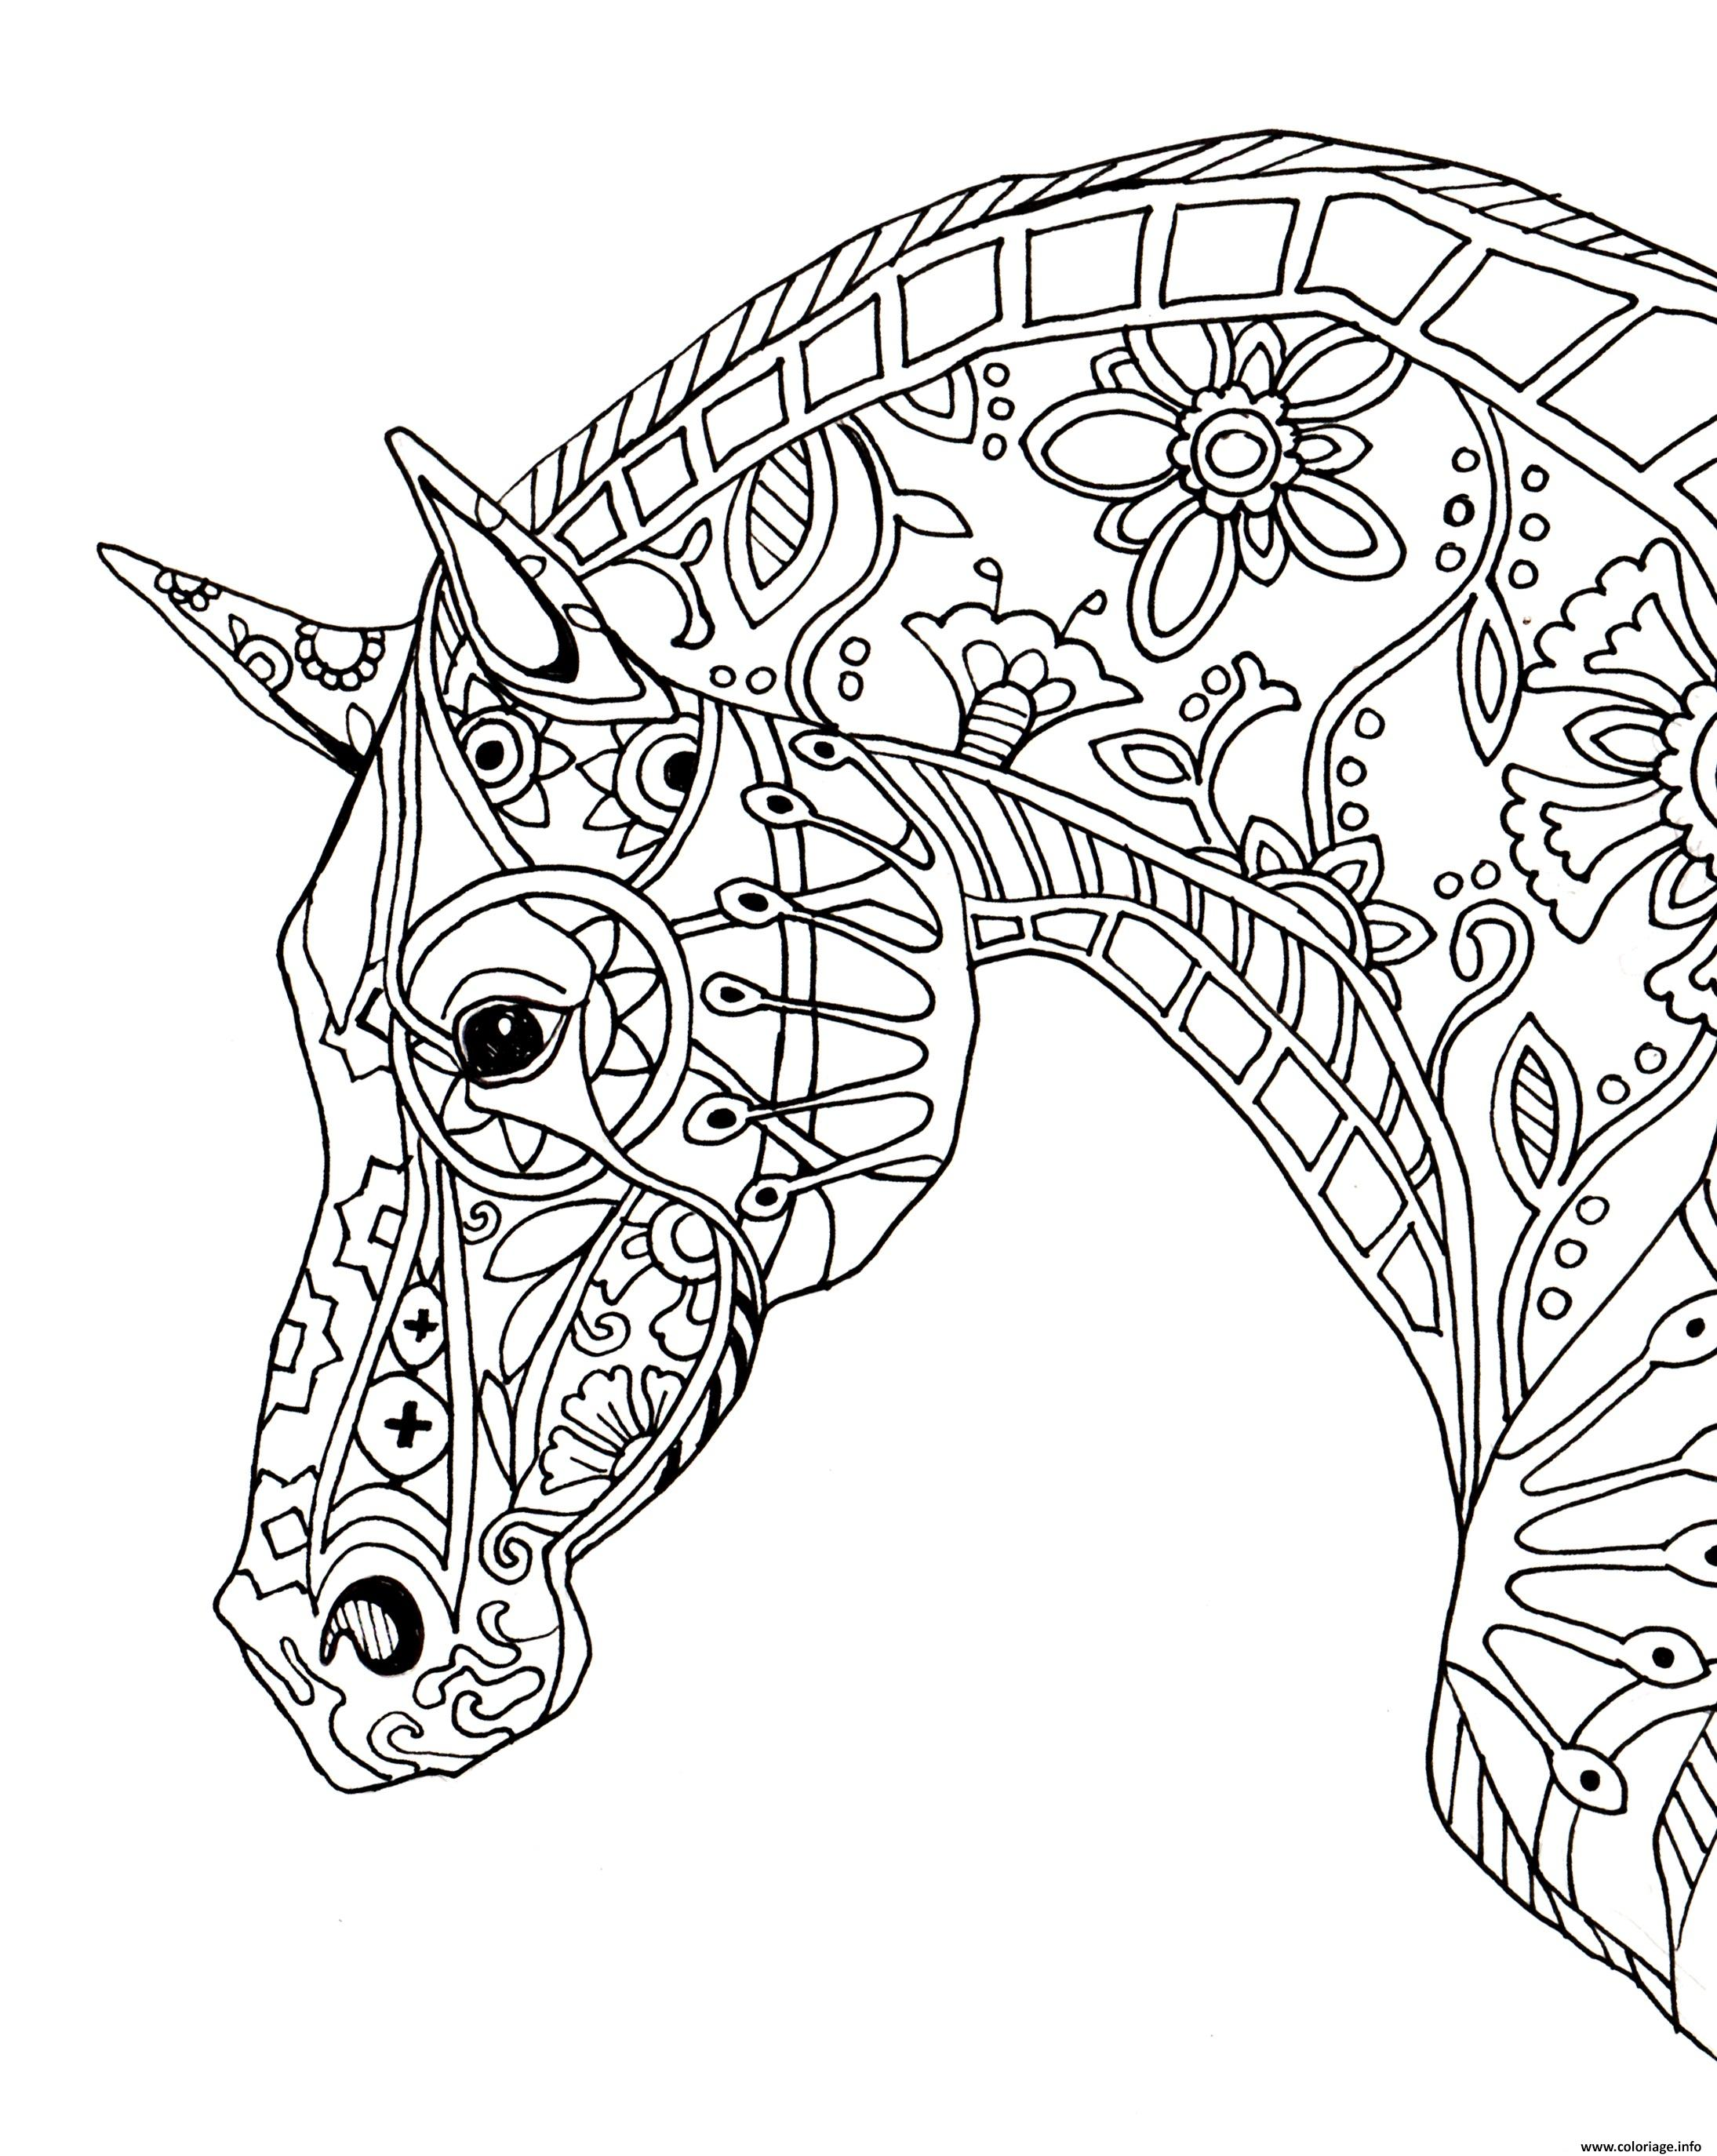 Coloriage Cheval Zen.Coloriage Cheval Adulte Decorative Horse Profile Jecolorie Com